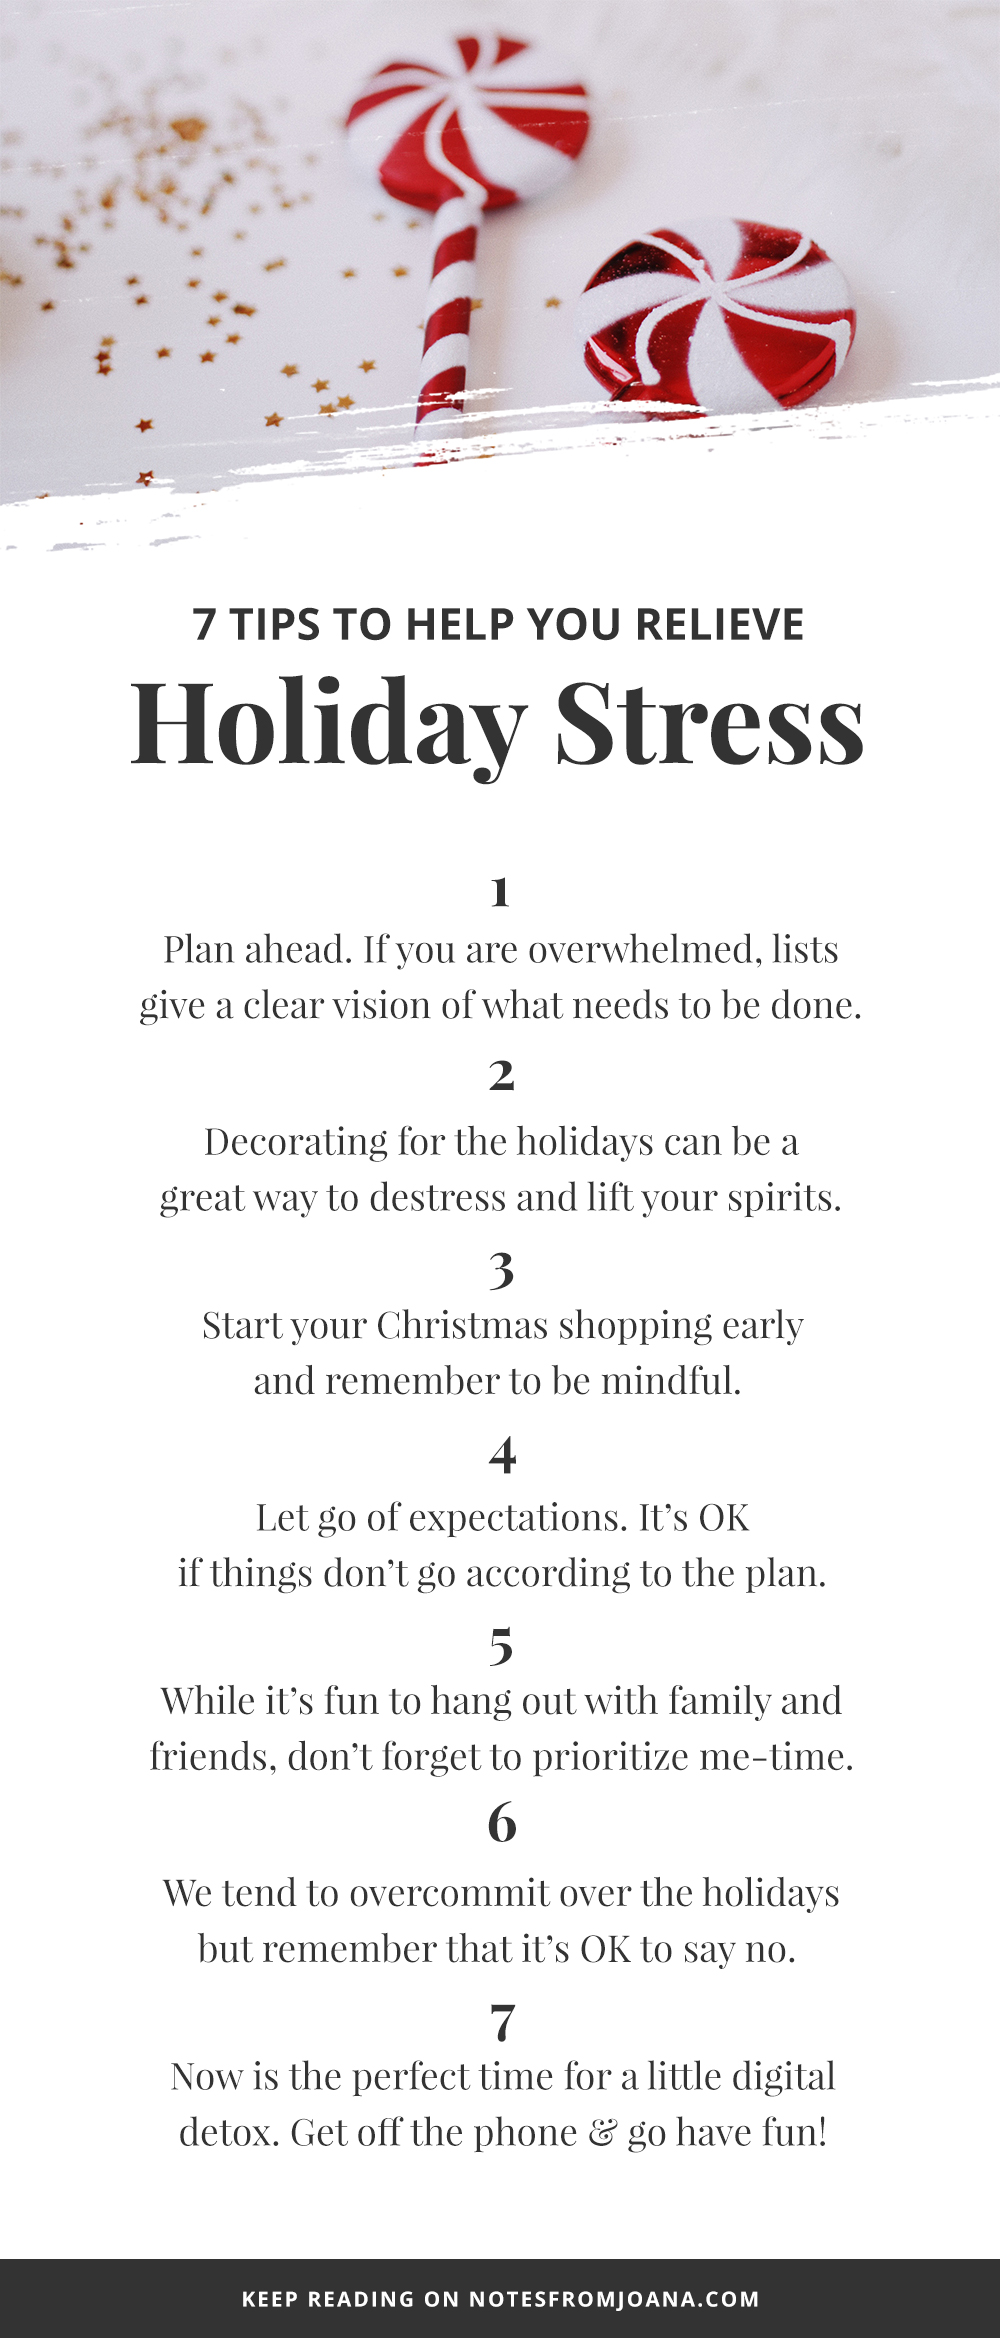 7 Tips To Help You Relieve Holiday Stress // Stress Free Holidays > Click through to read more! // Notes from Joana